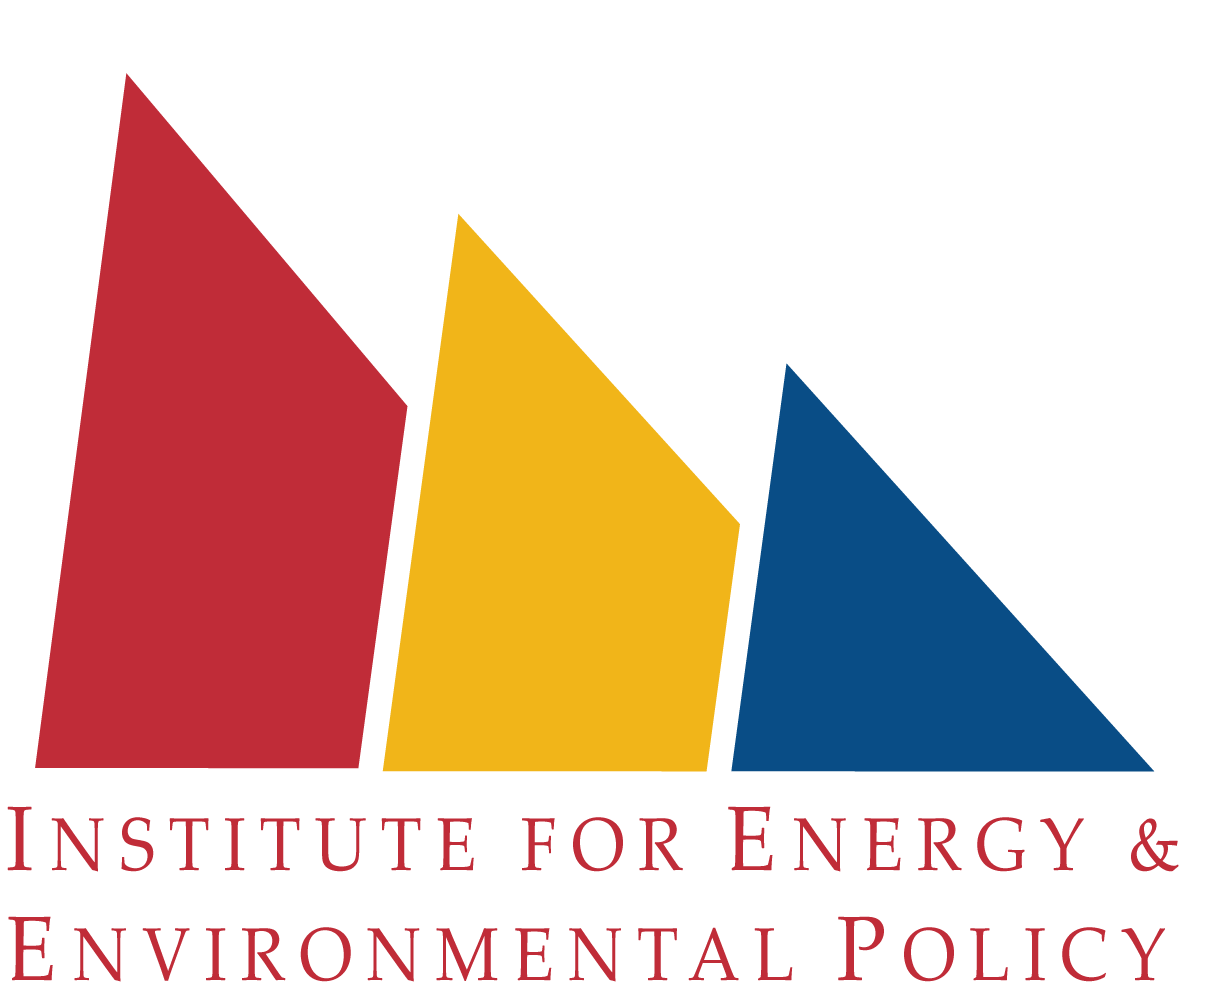 [Queen's Institute for Energy and Environmental Policy - logo]